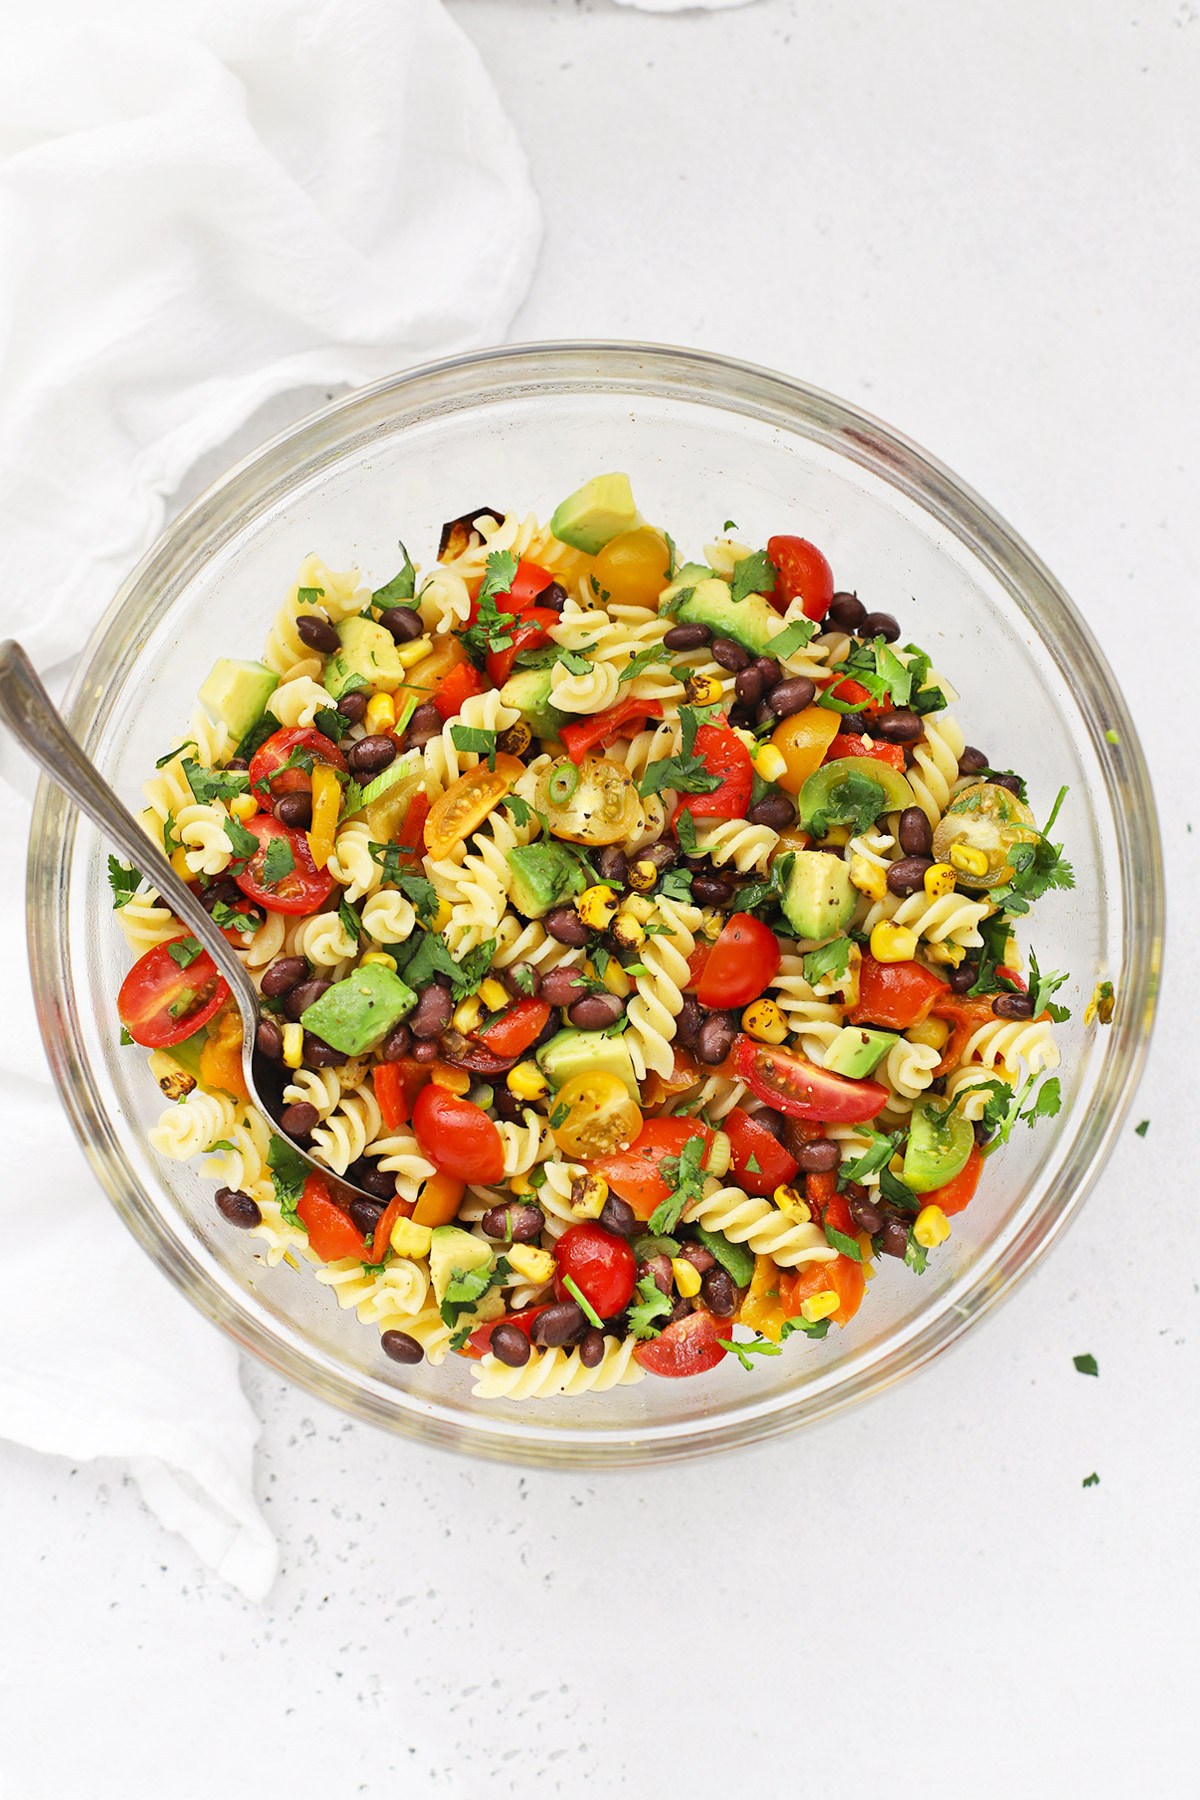 Overhead view of a glass mixing bowl of healthy taco pasta salad on a white background